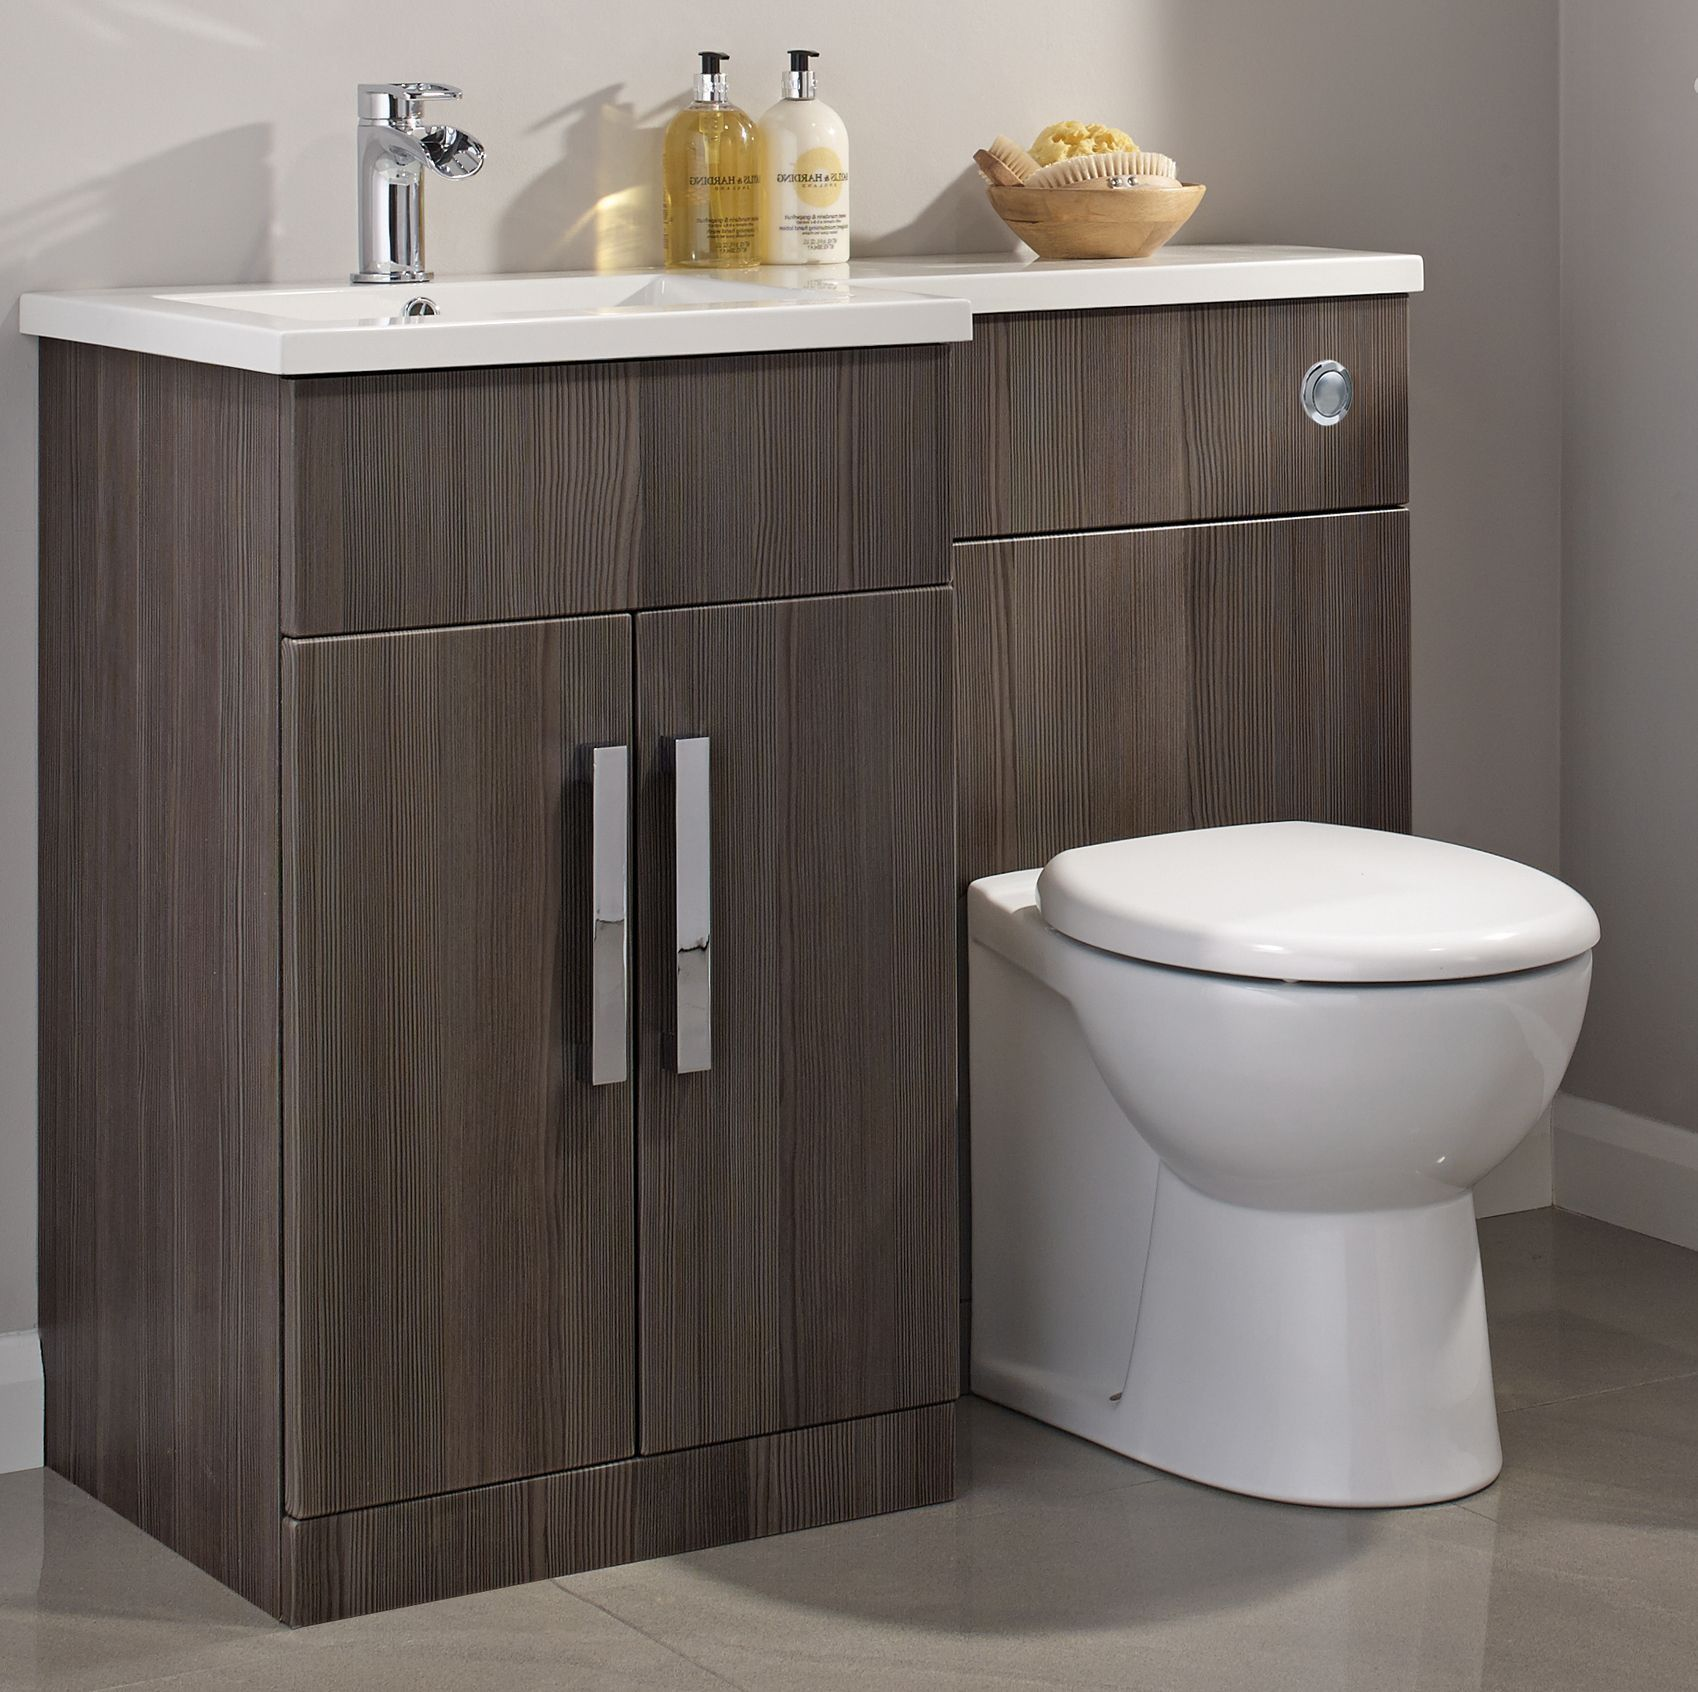 Cooke Lewis Paolo Gloss White Wall Hung Vanity Unit Basin Depar